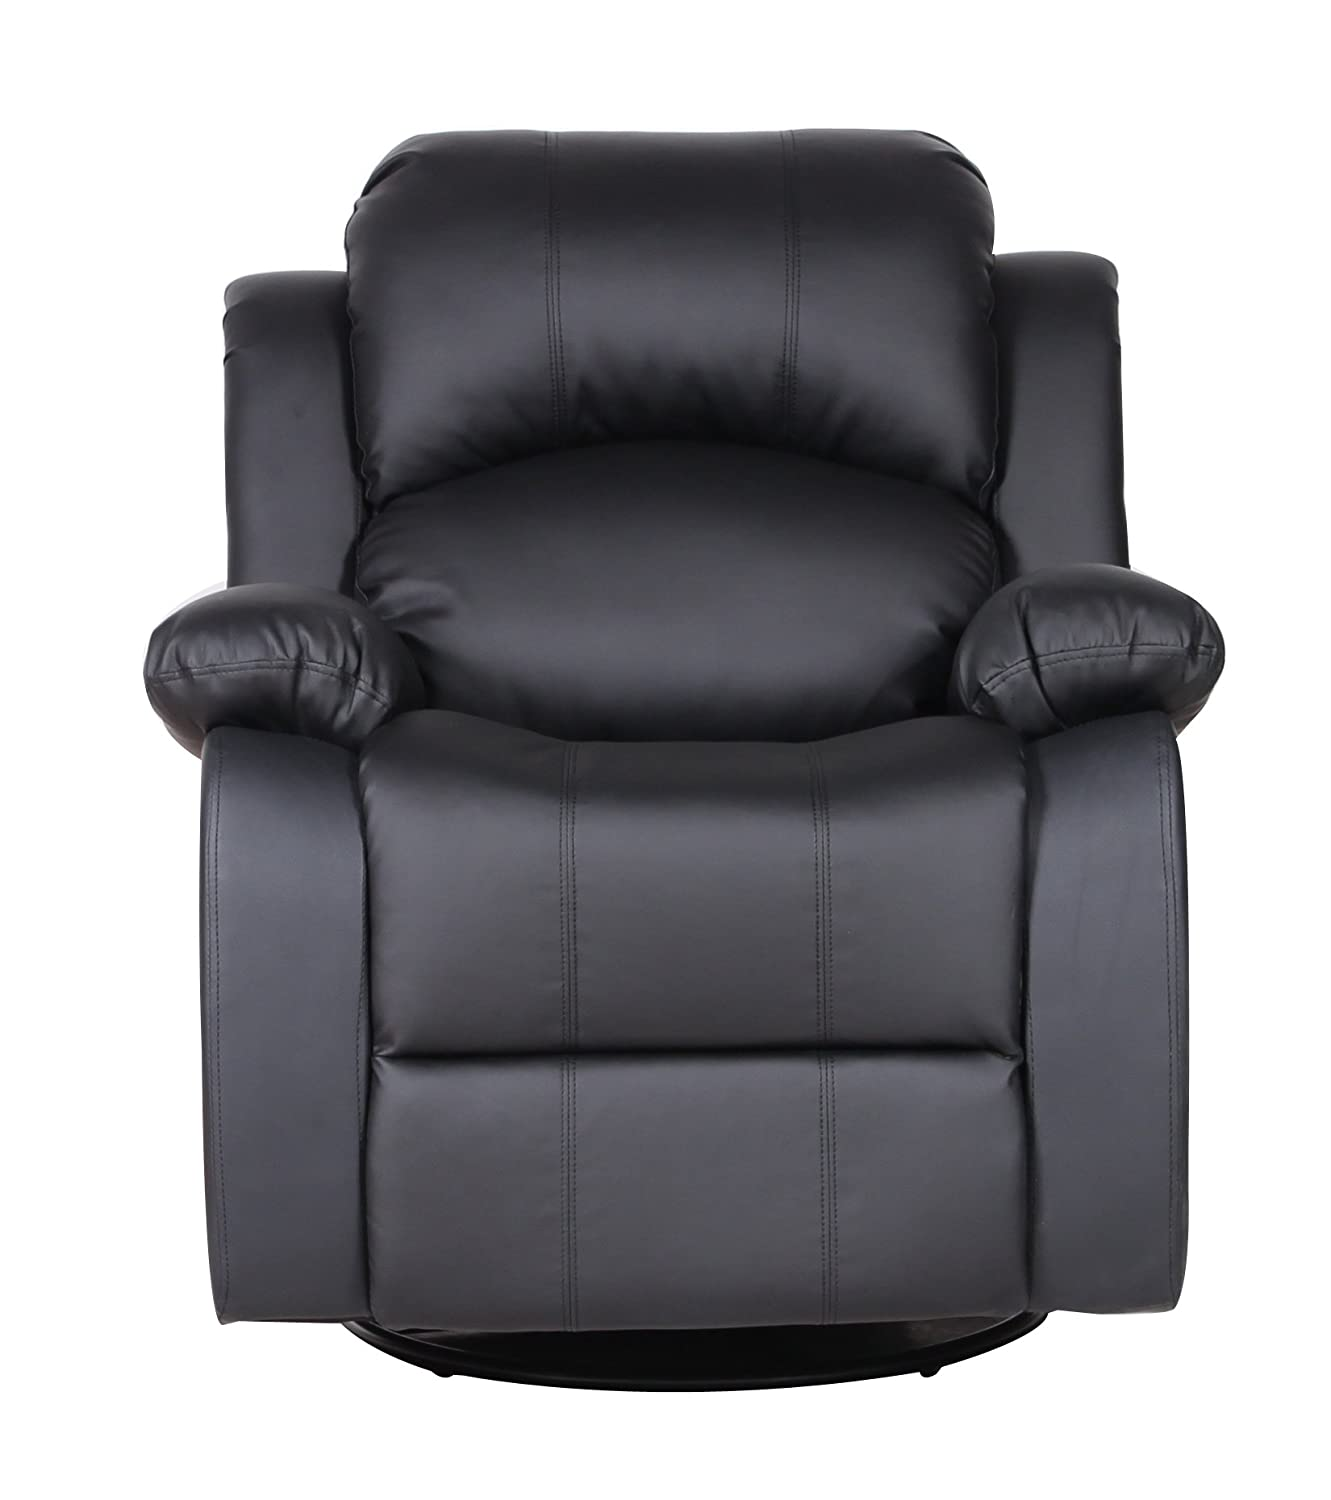 Amazon.com: Bonded Leather Rocker And Swivel Recliner Living Room Chair  (Black): Kitchen U0026 Dining